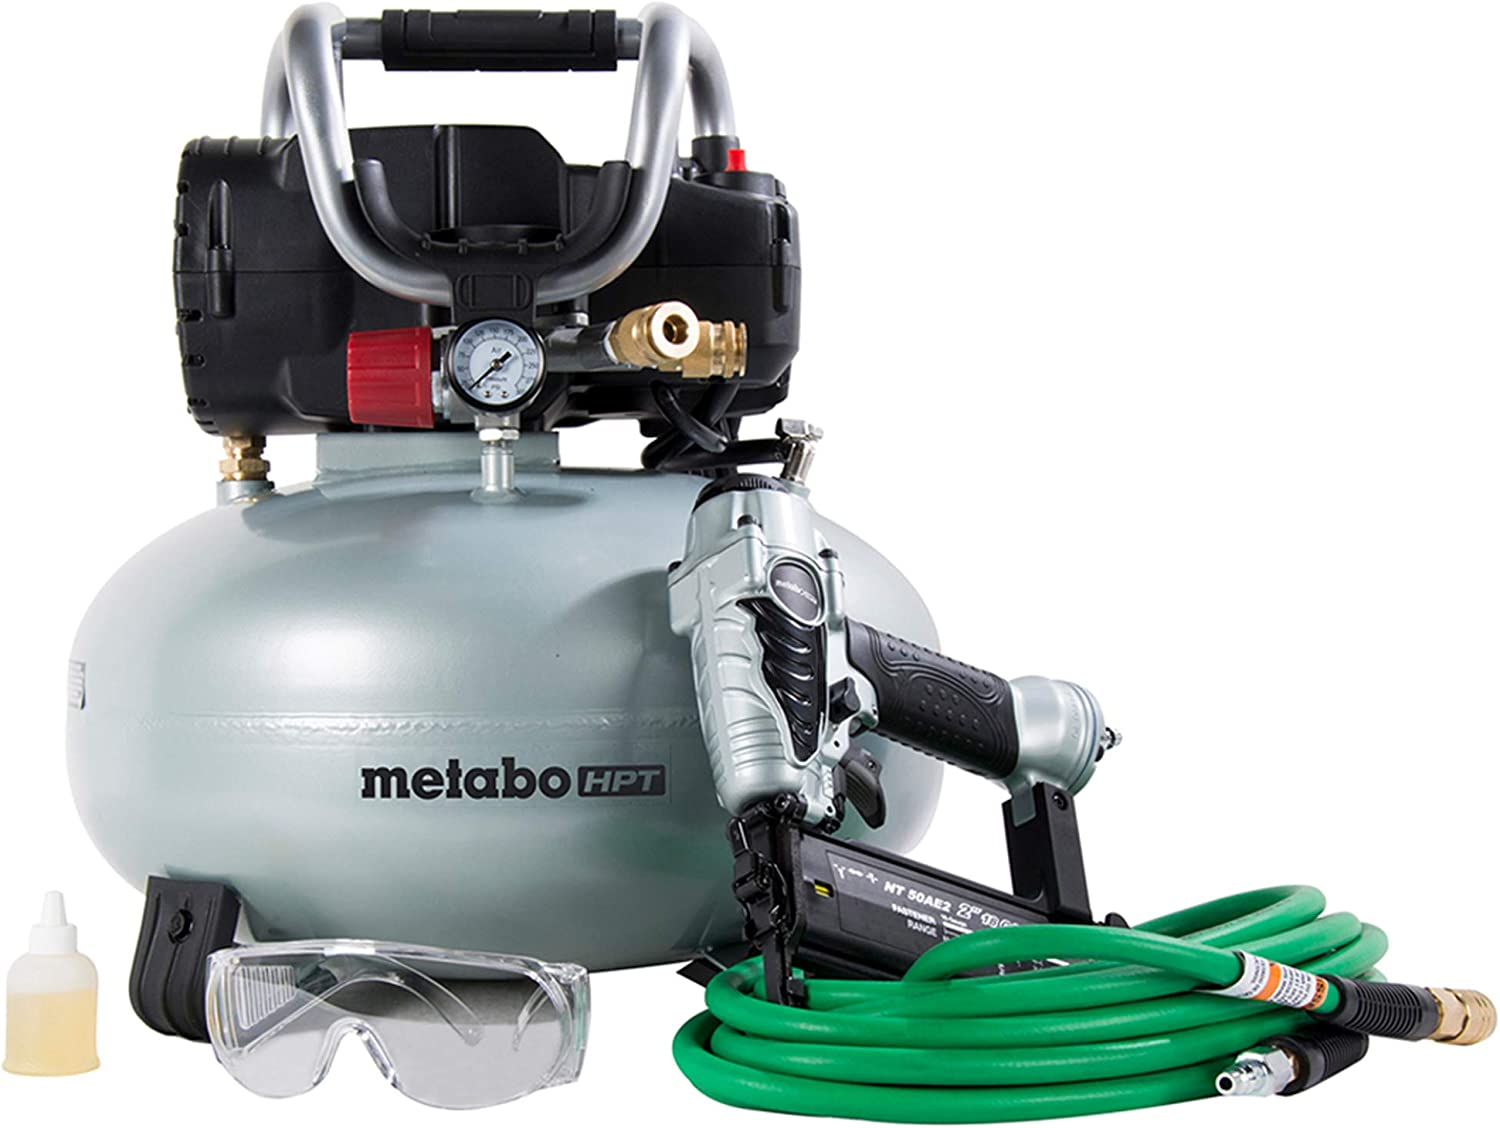 metabo air compressor KNT50AB